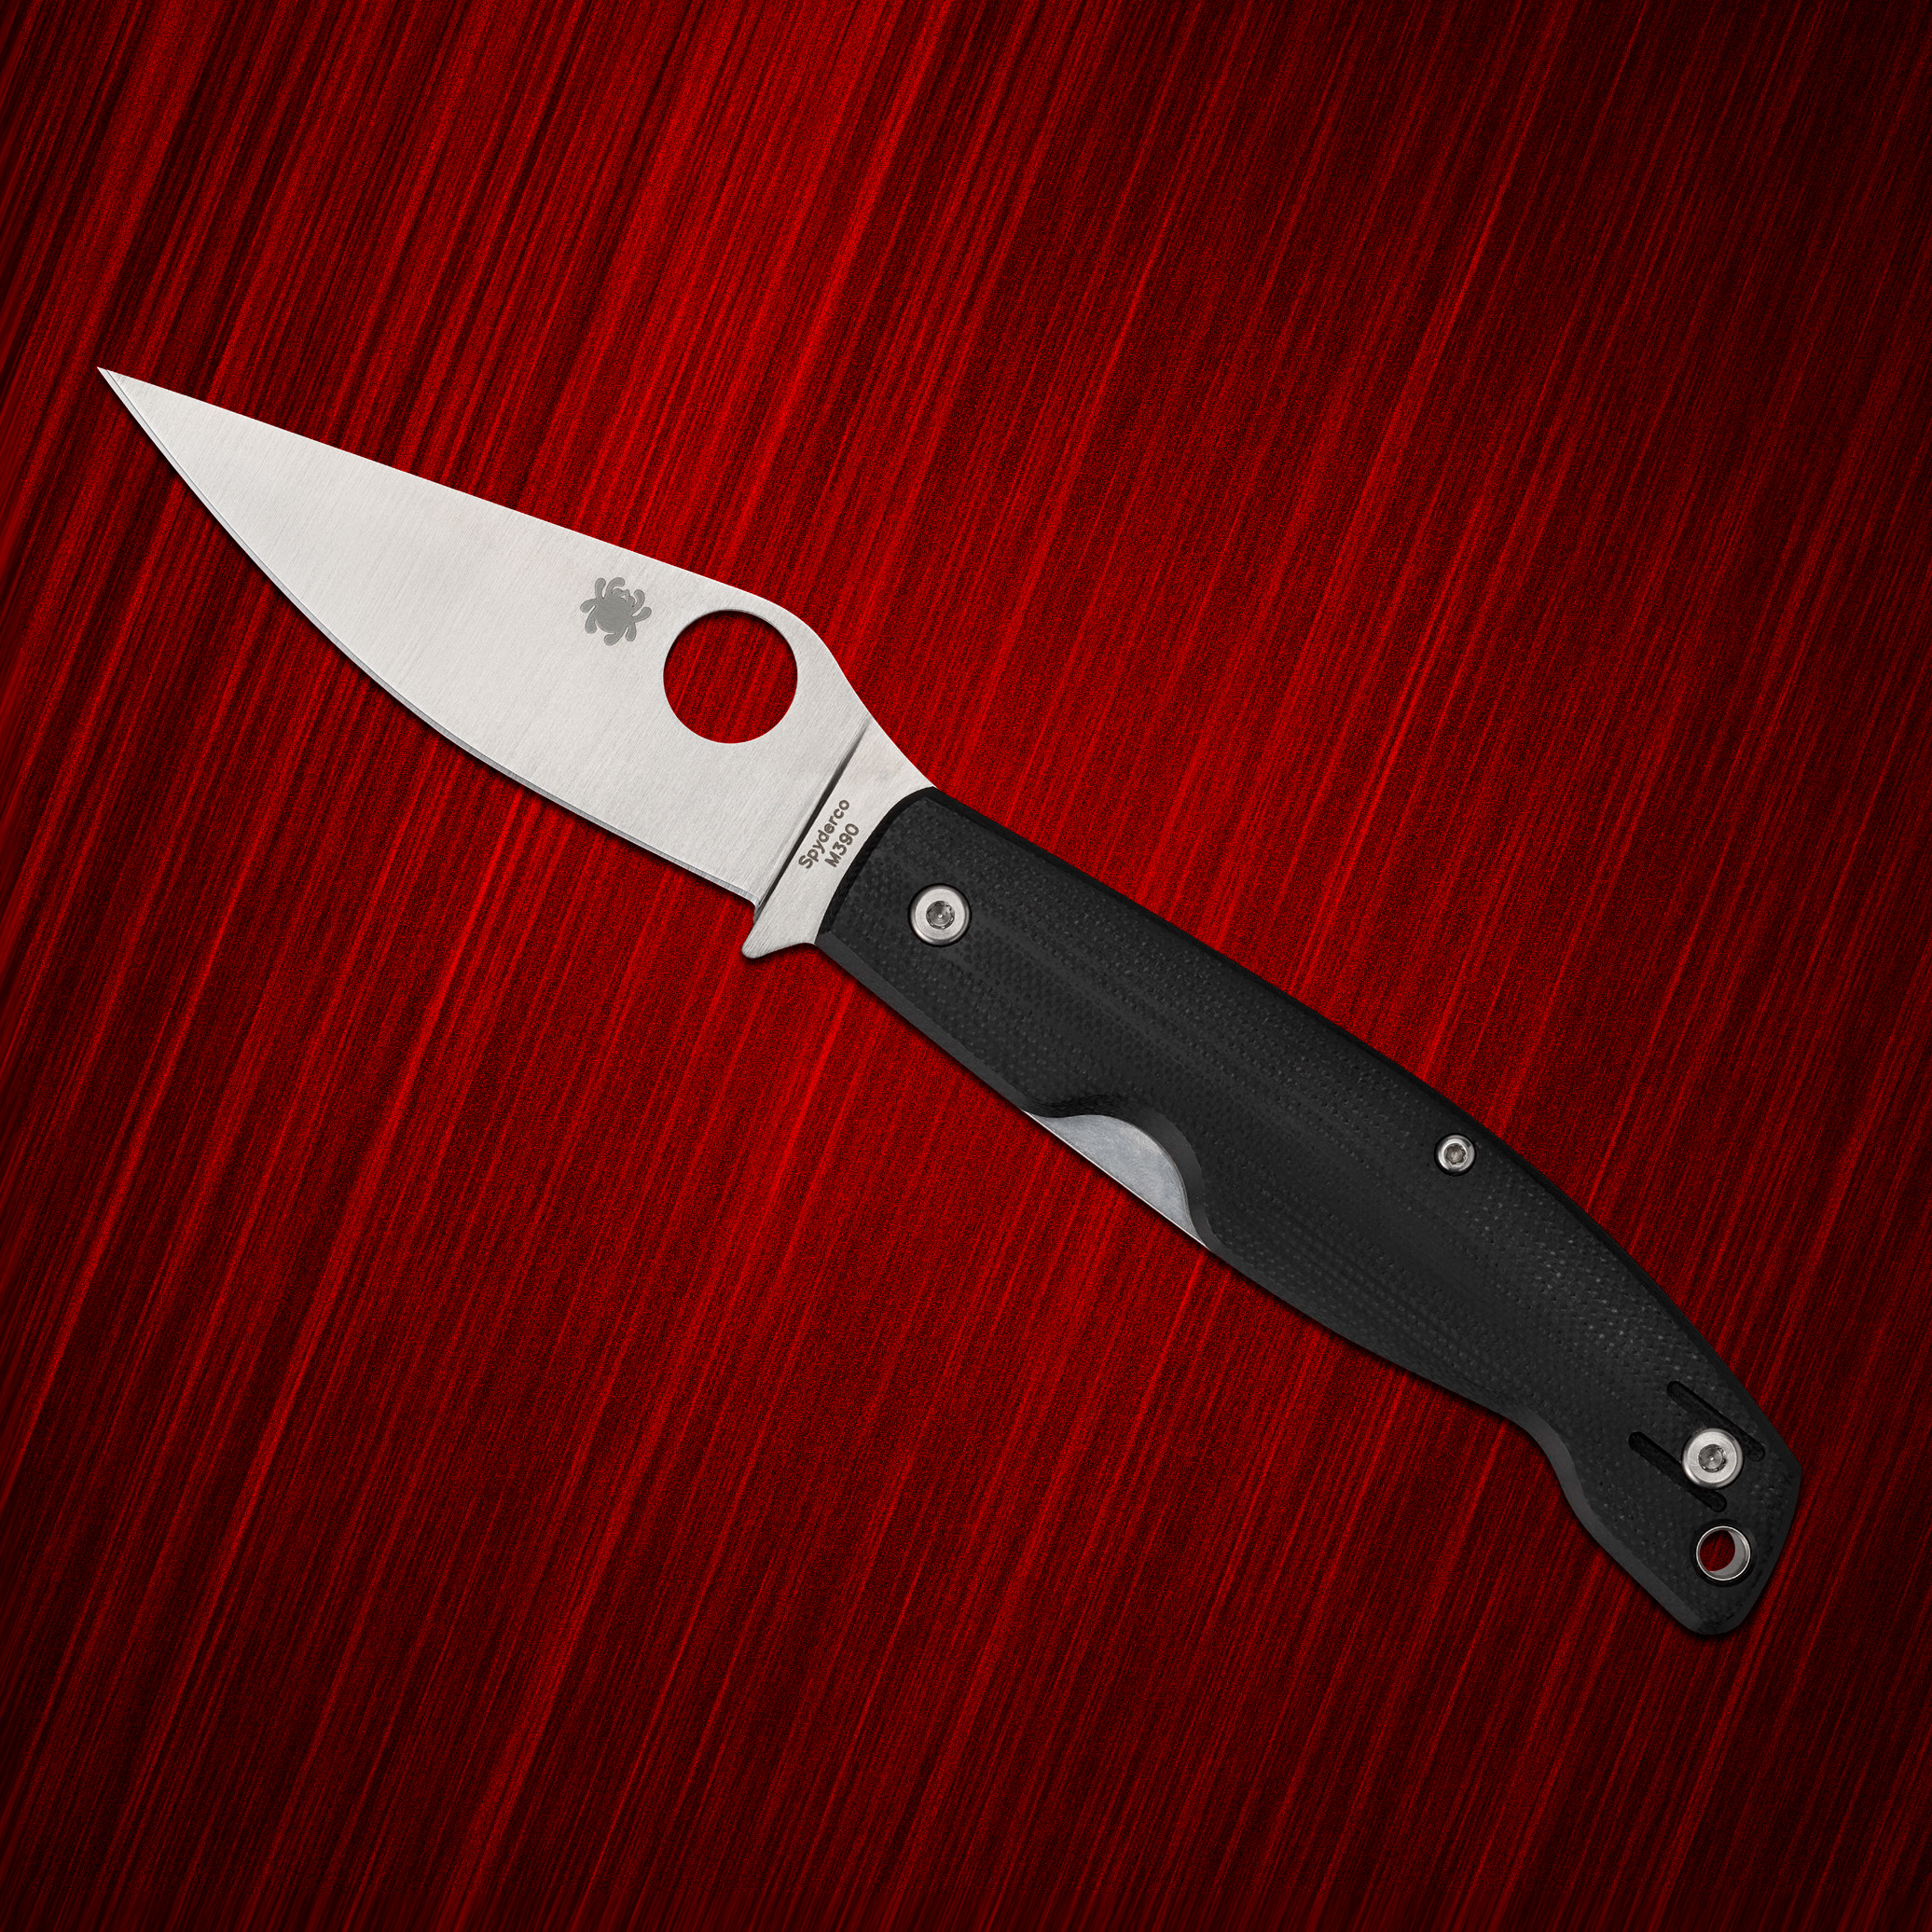 Spyderco Pattadese with black scales on a red background